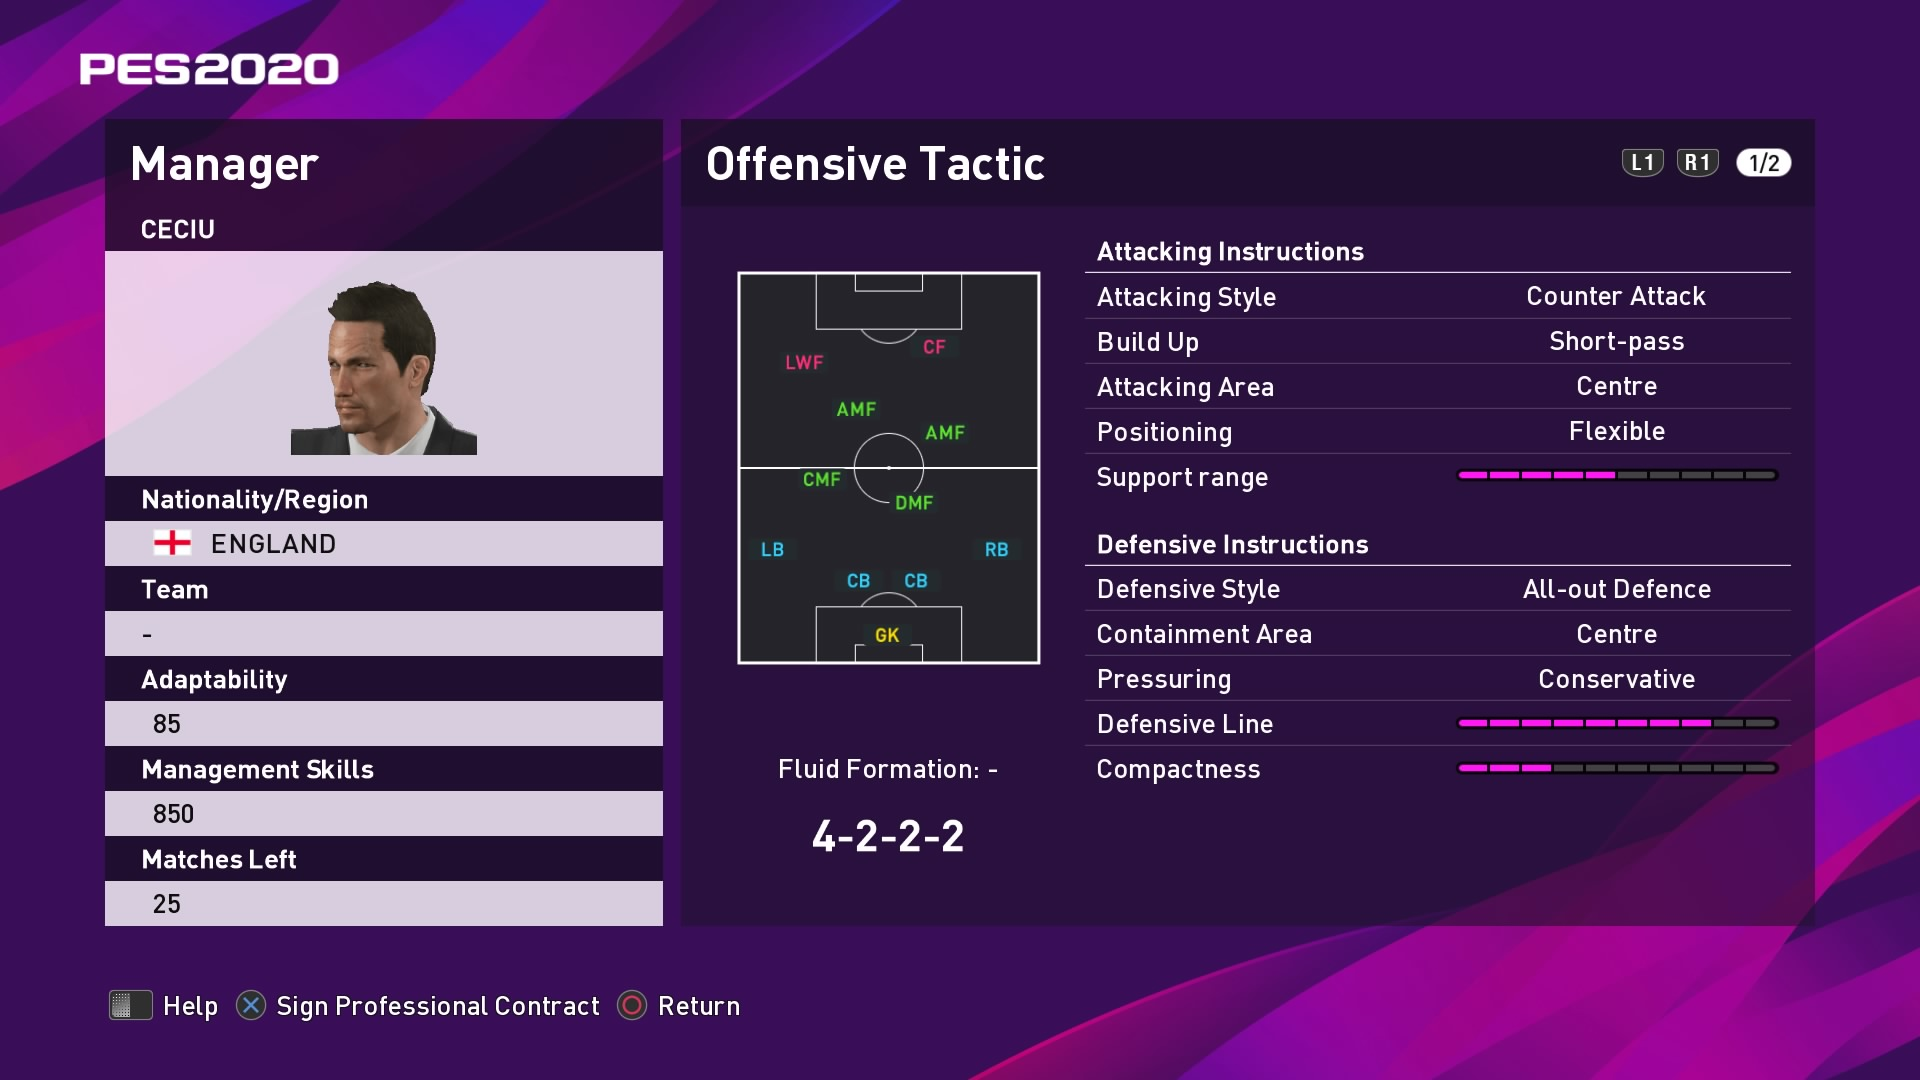 Ceciu Offensive Tactic in PES 2020 myClub